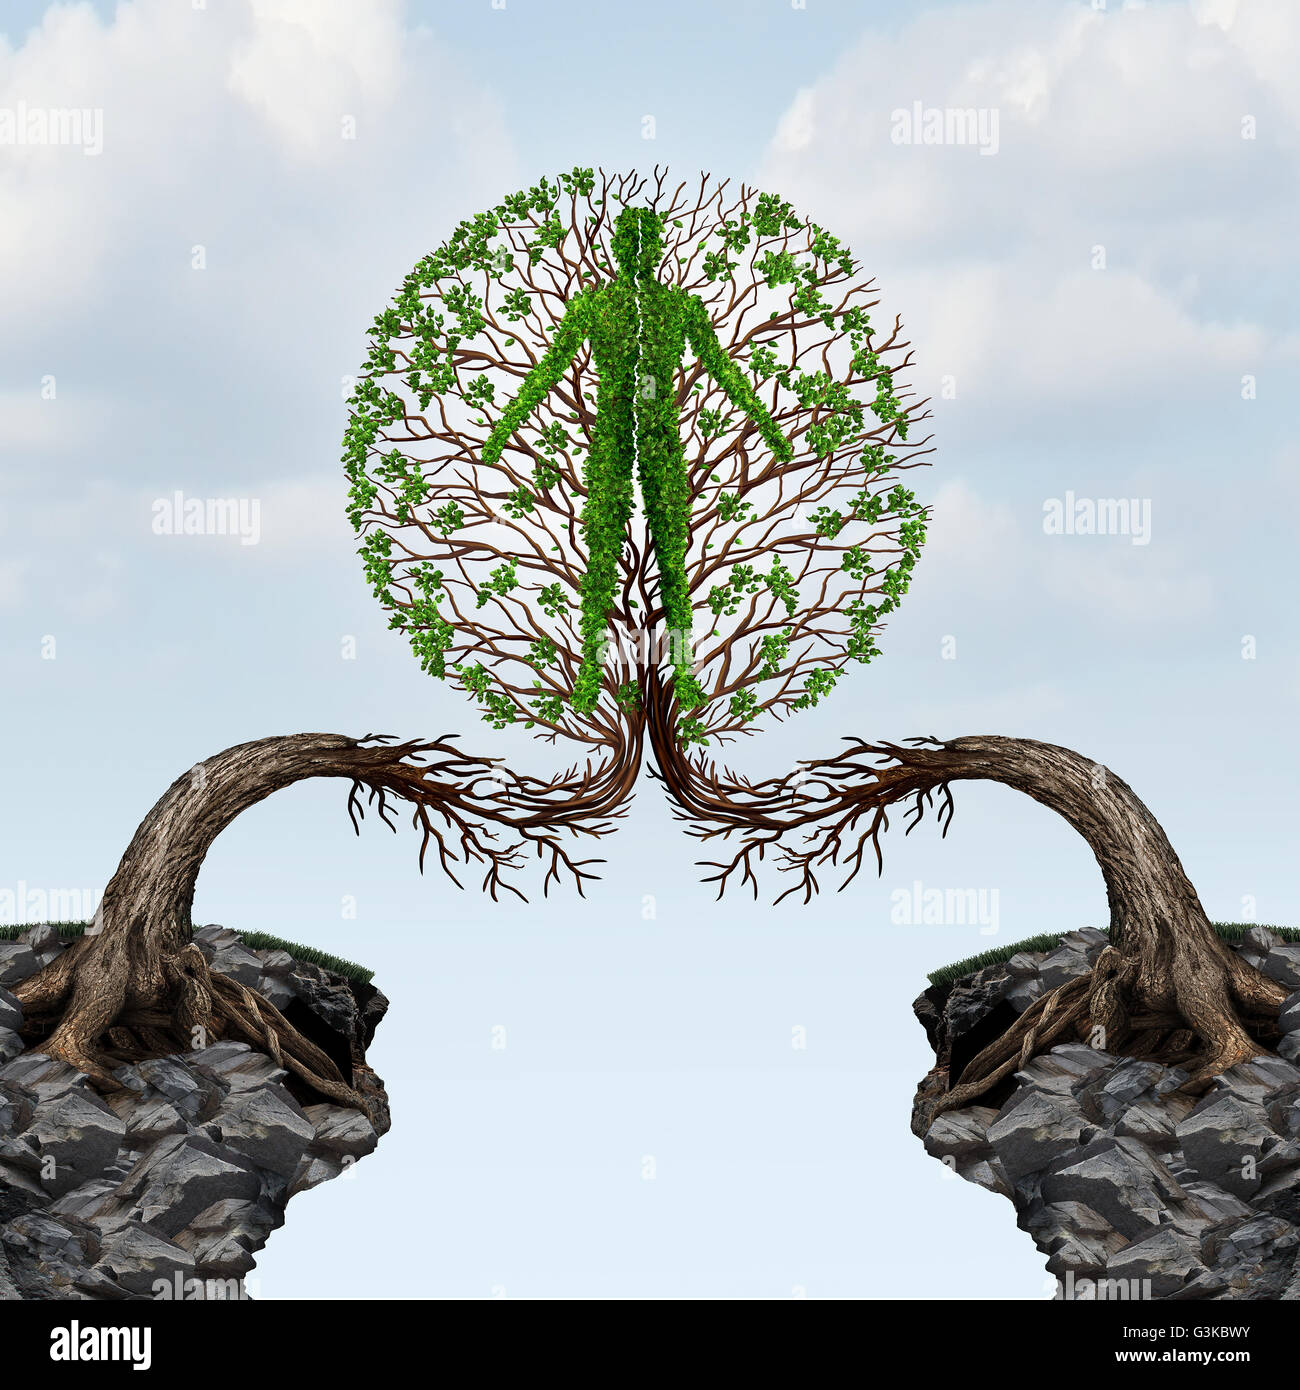 Global unity and international partnership concept as two trees from two distant cliffs joining together to form. - Stock Image